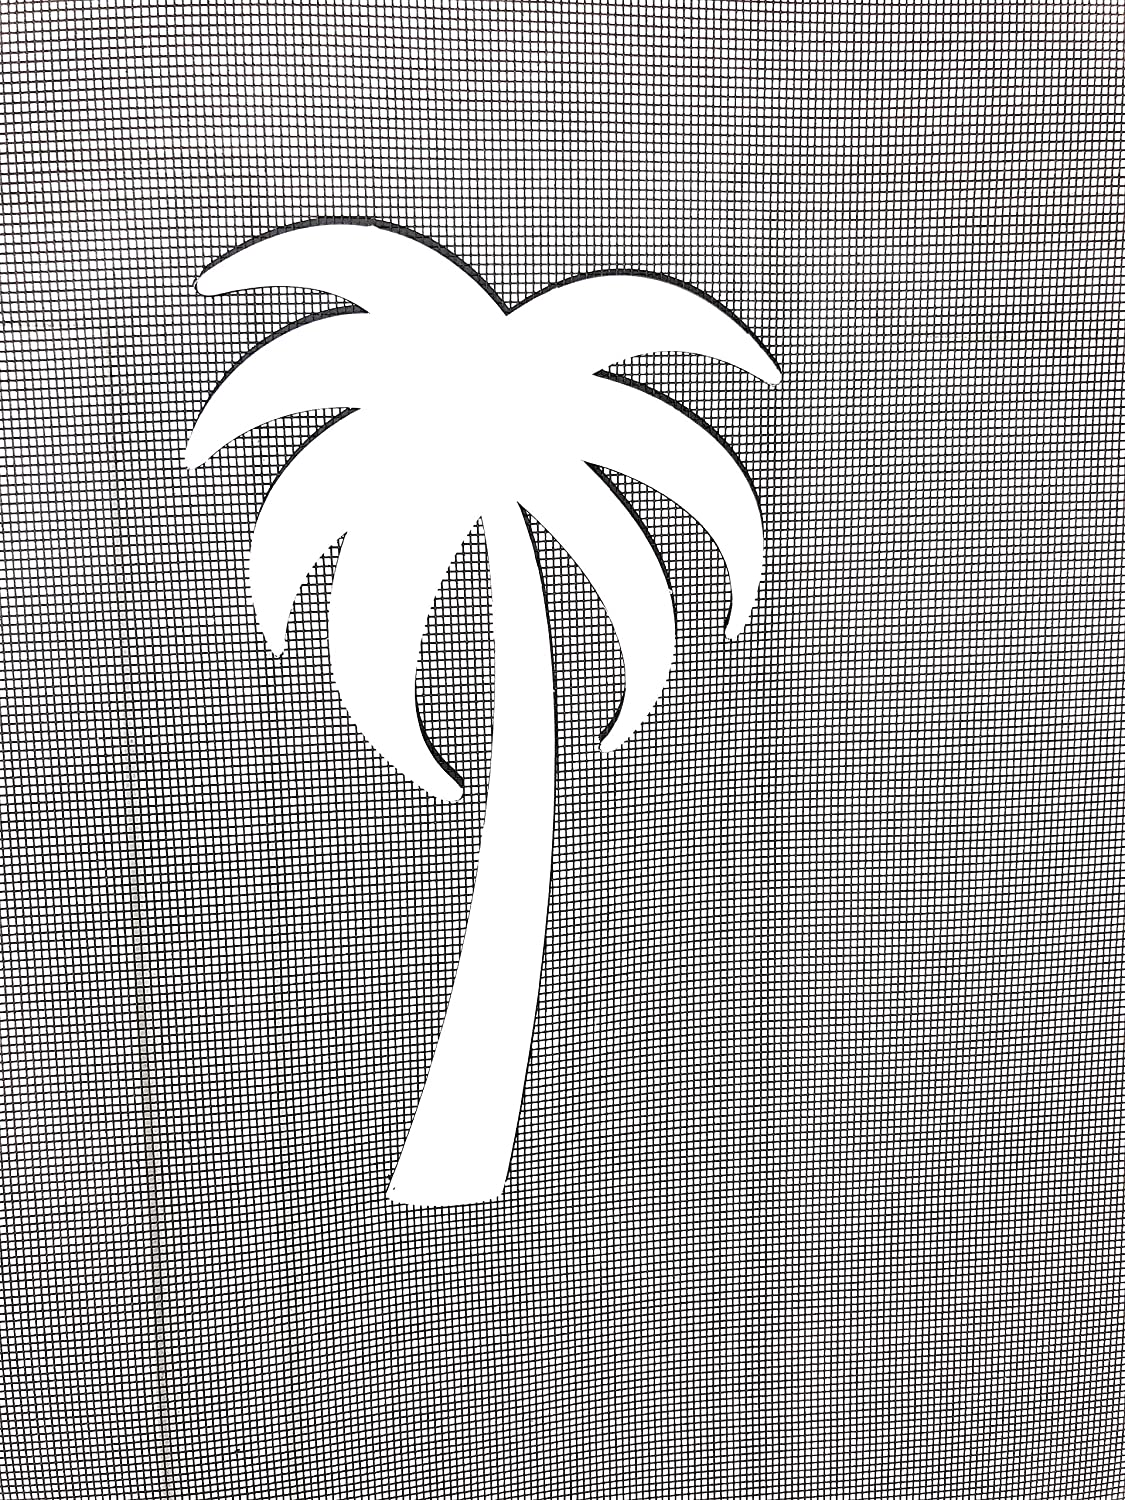 "DCentral Palm Tree Flexible Screen Magnet Decor; Multipurpose, Double-Sided, for Non-Retractable Screens, Helps to Stop Walking into Screens, Covers Small tears in Screens. Size W 4.5"" X 7.5"